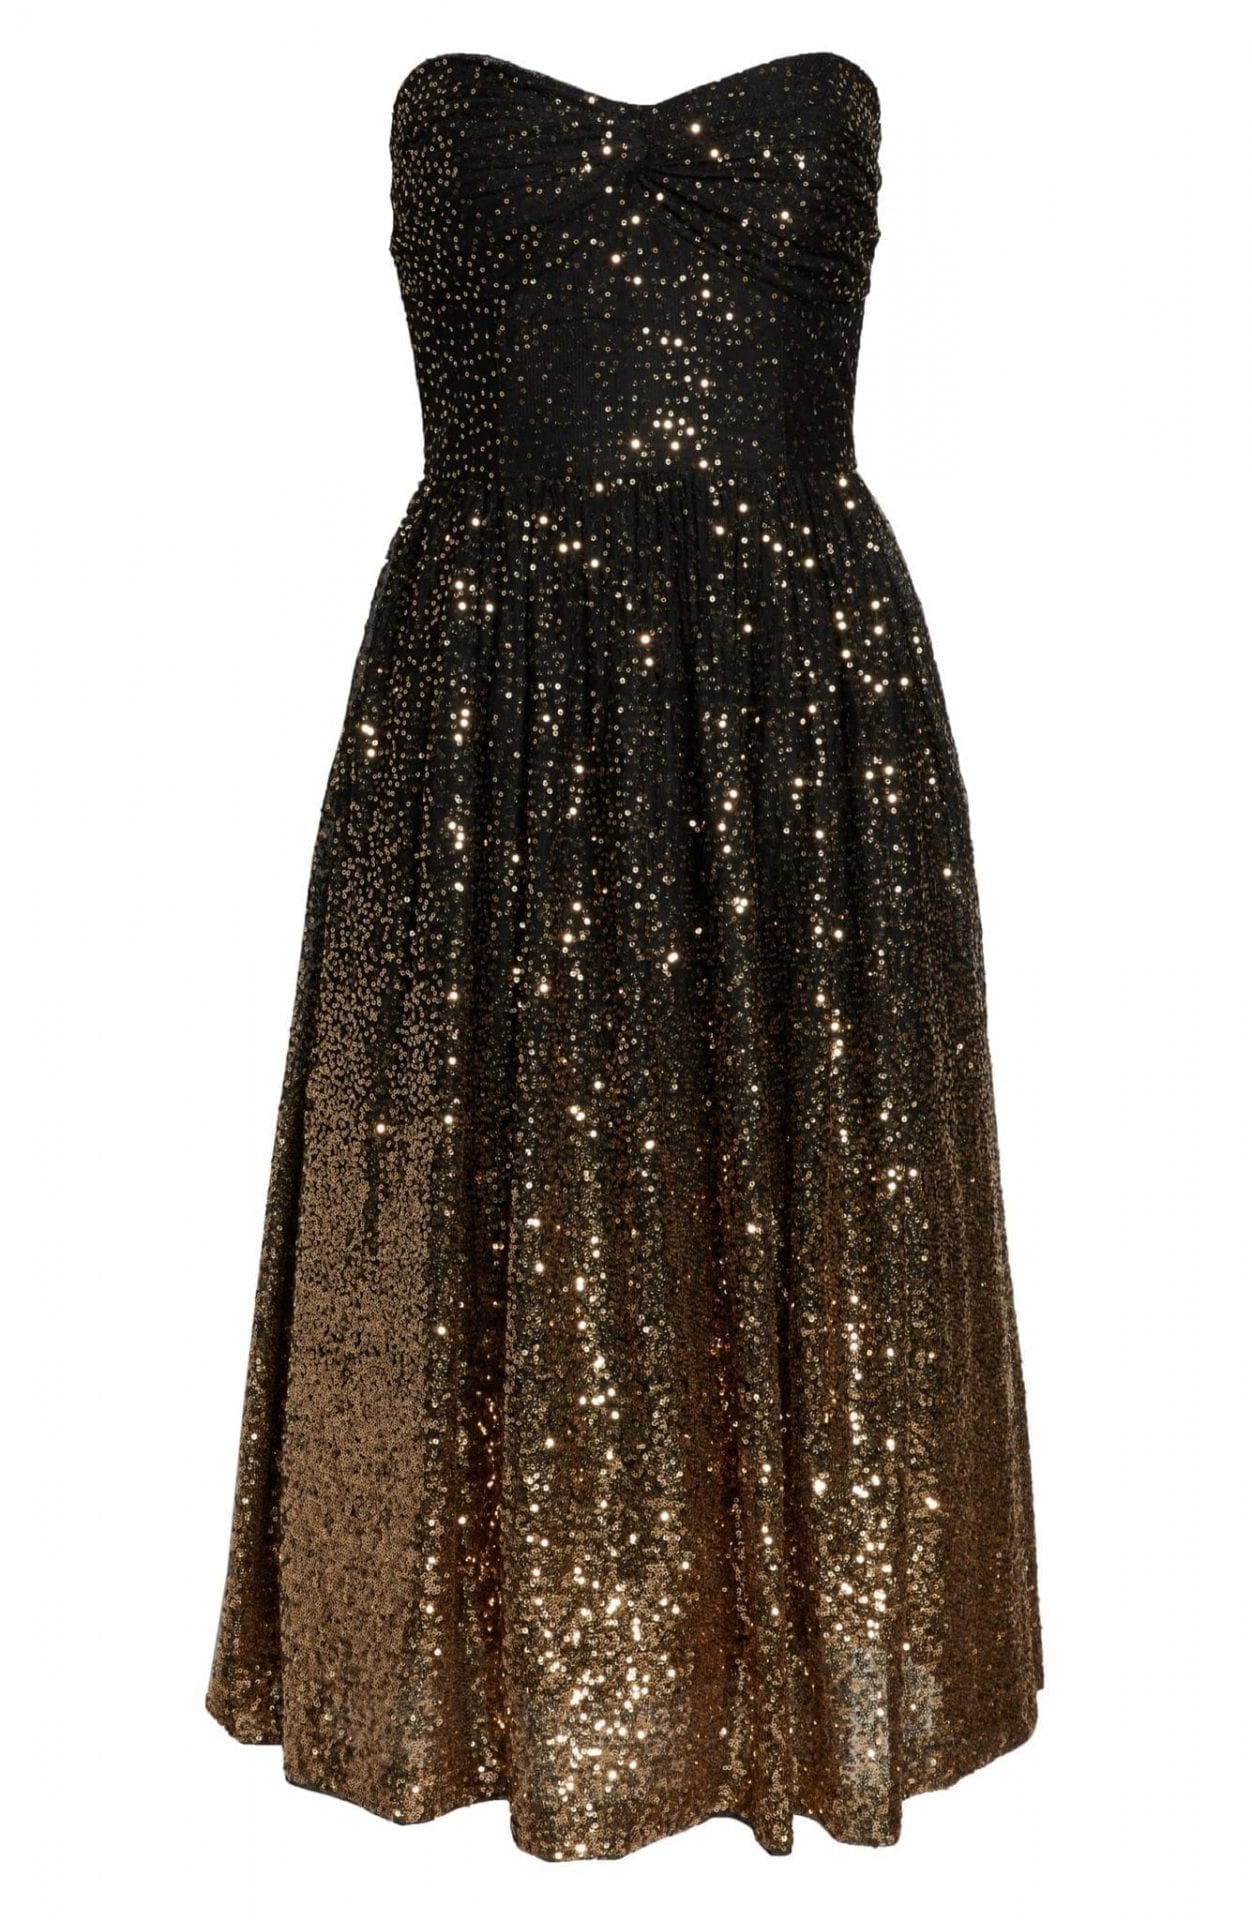 Black and Gold Dress